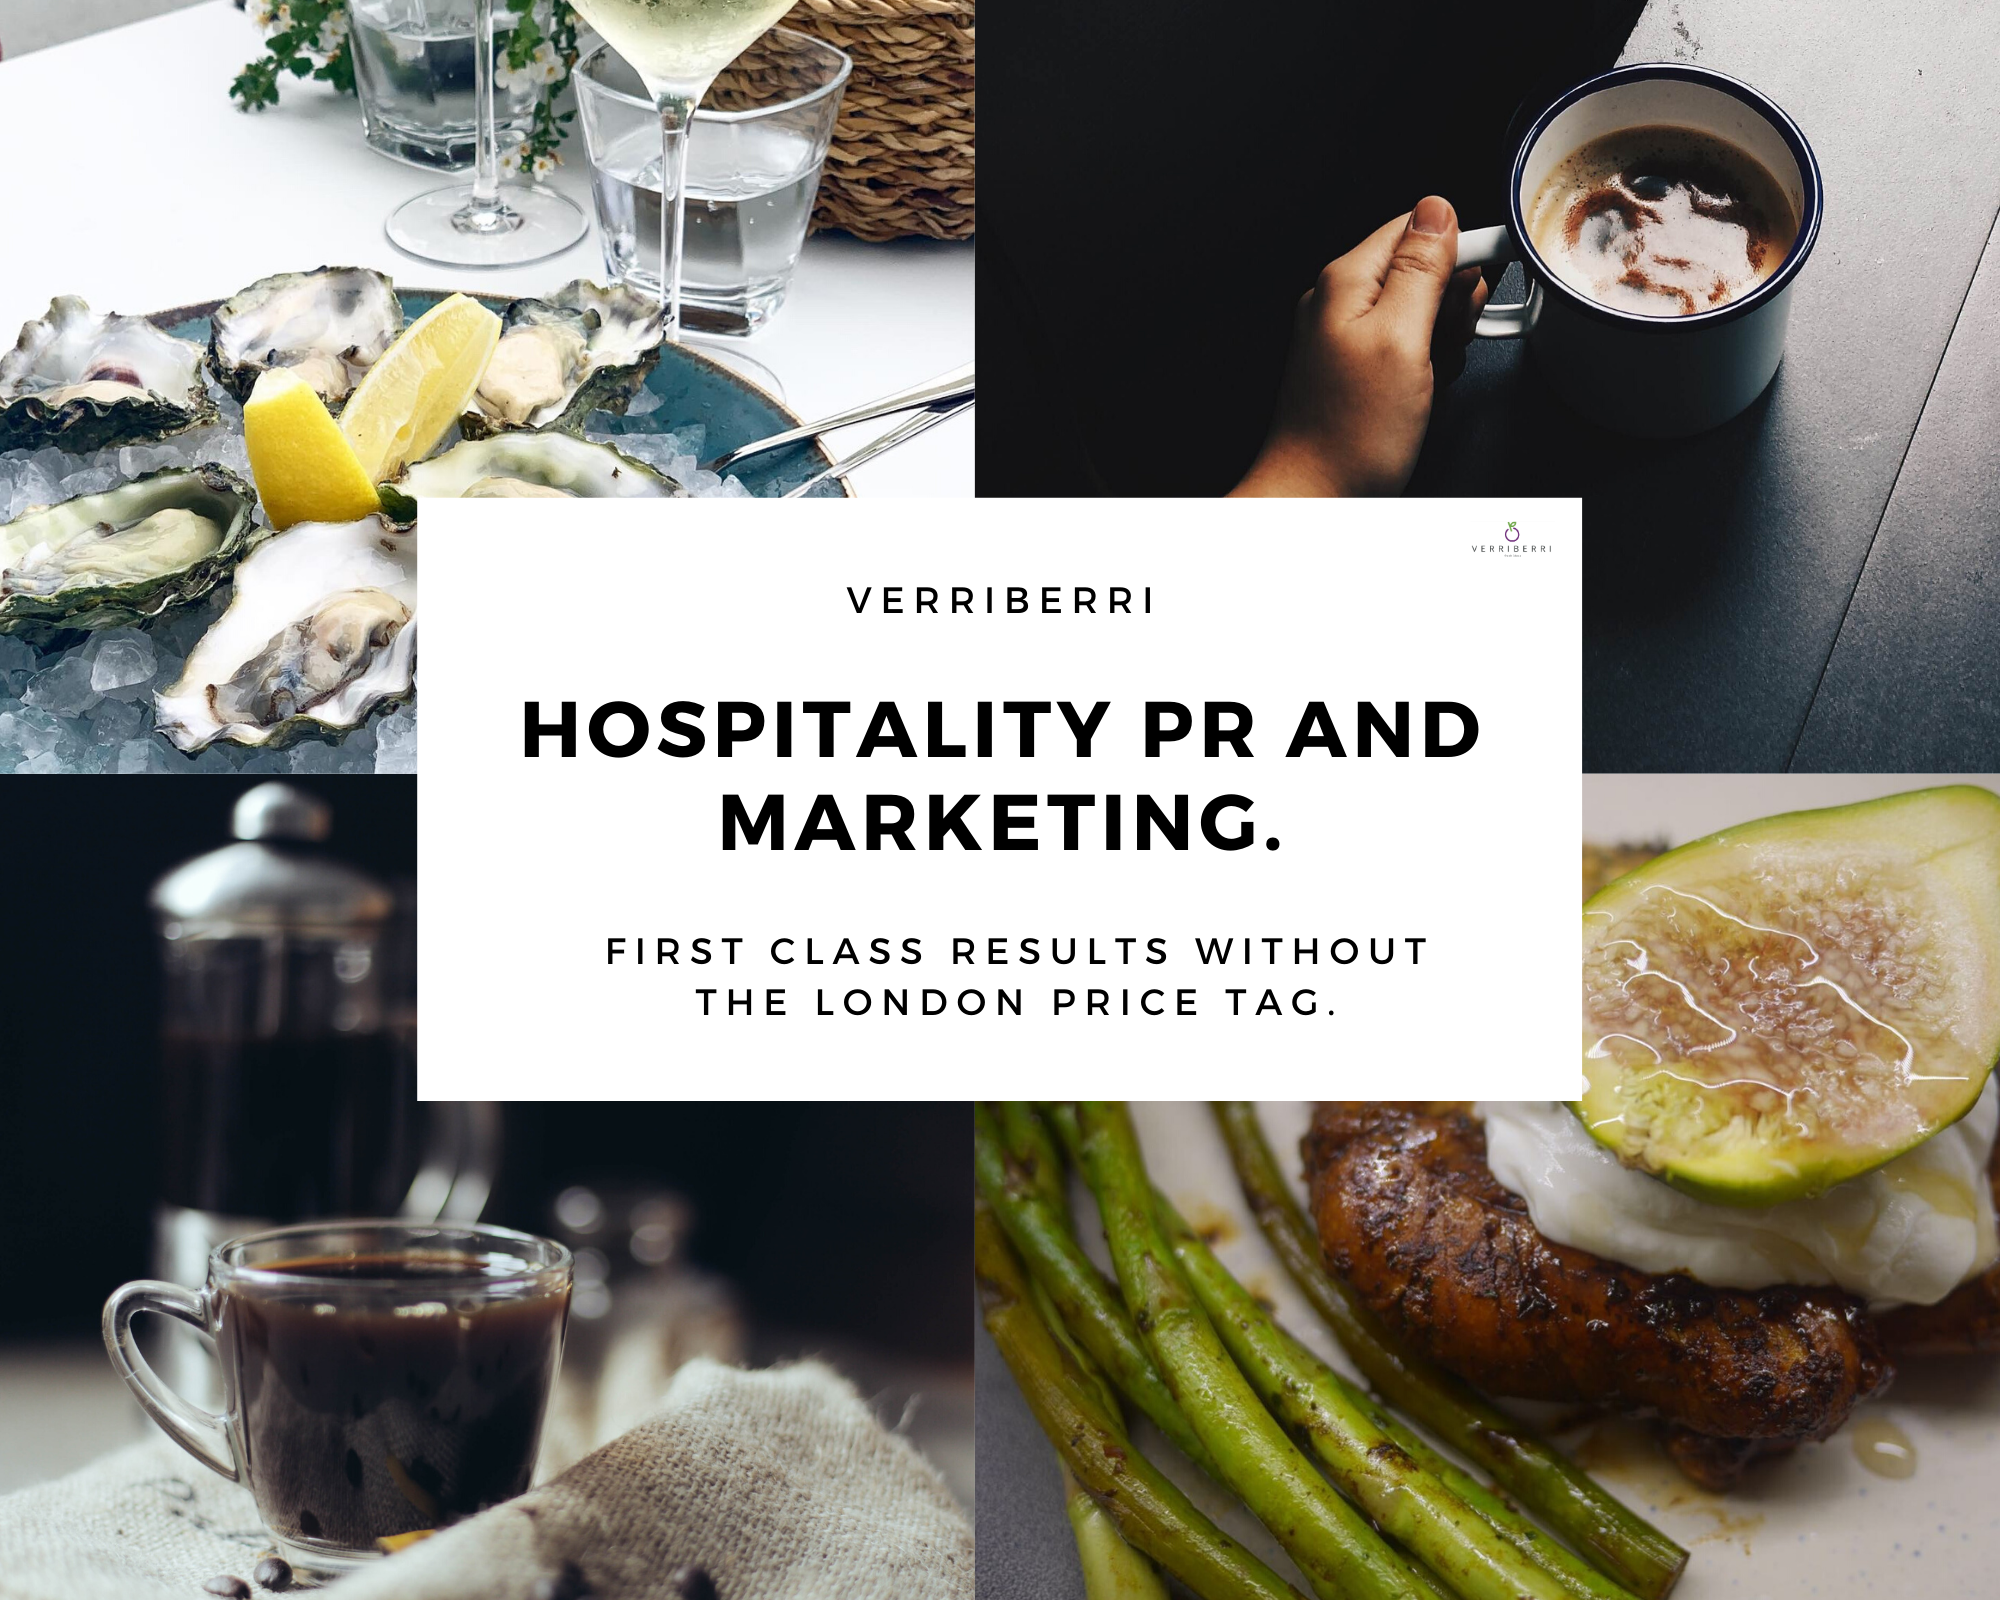 Food and drink hospitality PR agency